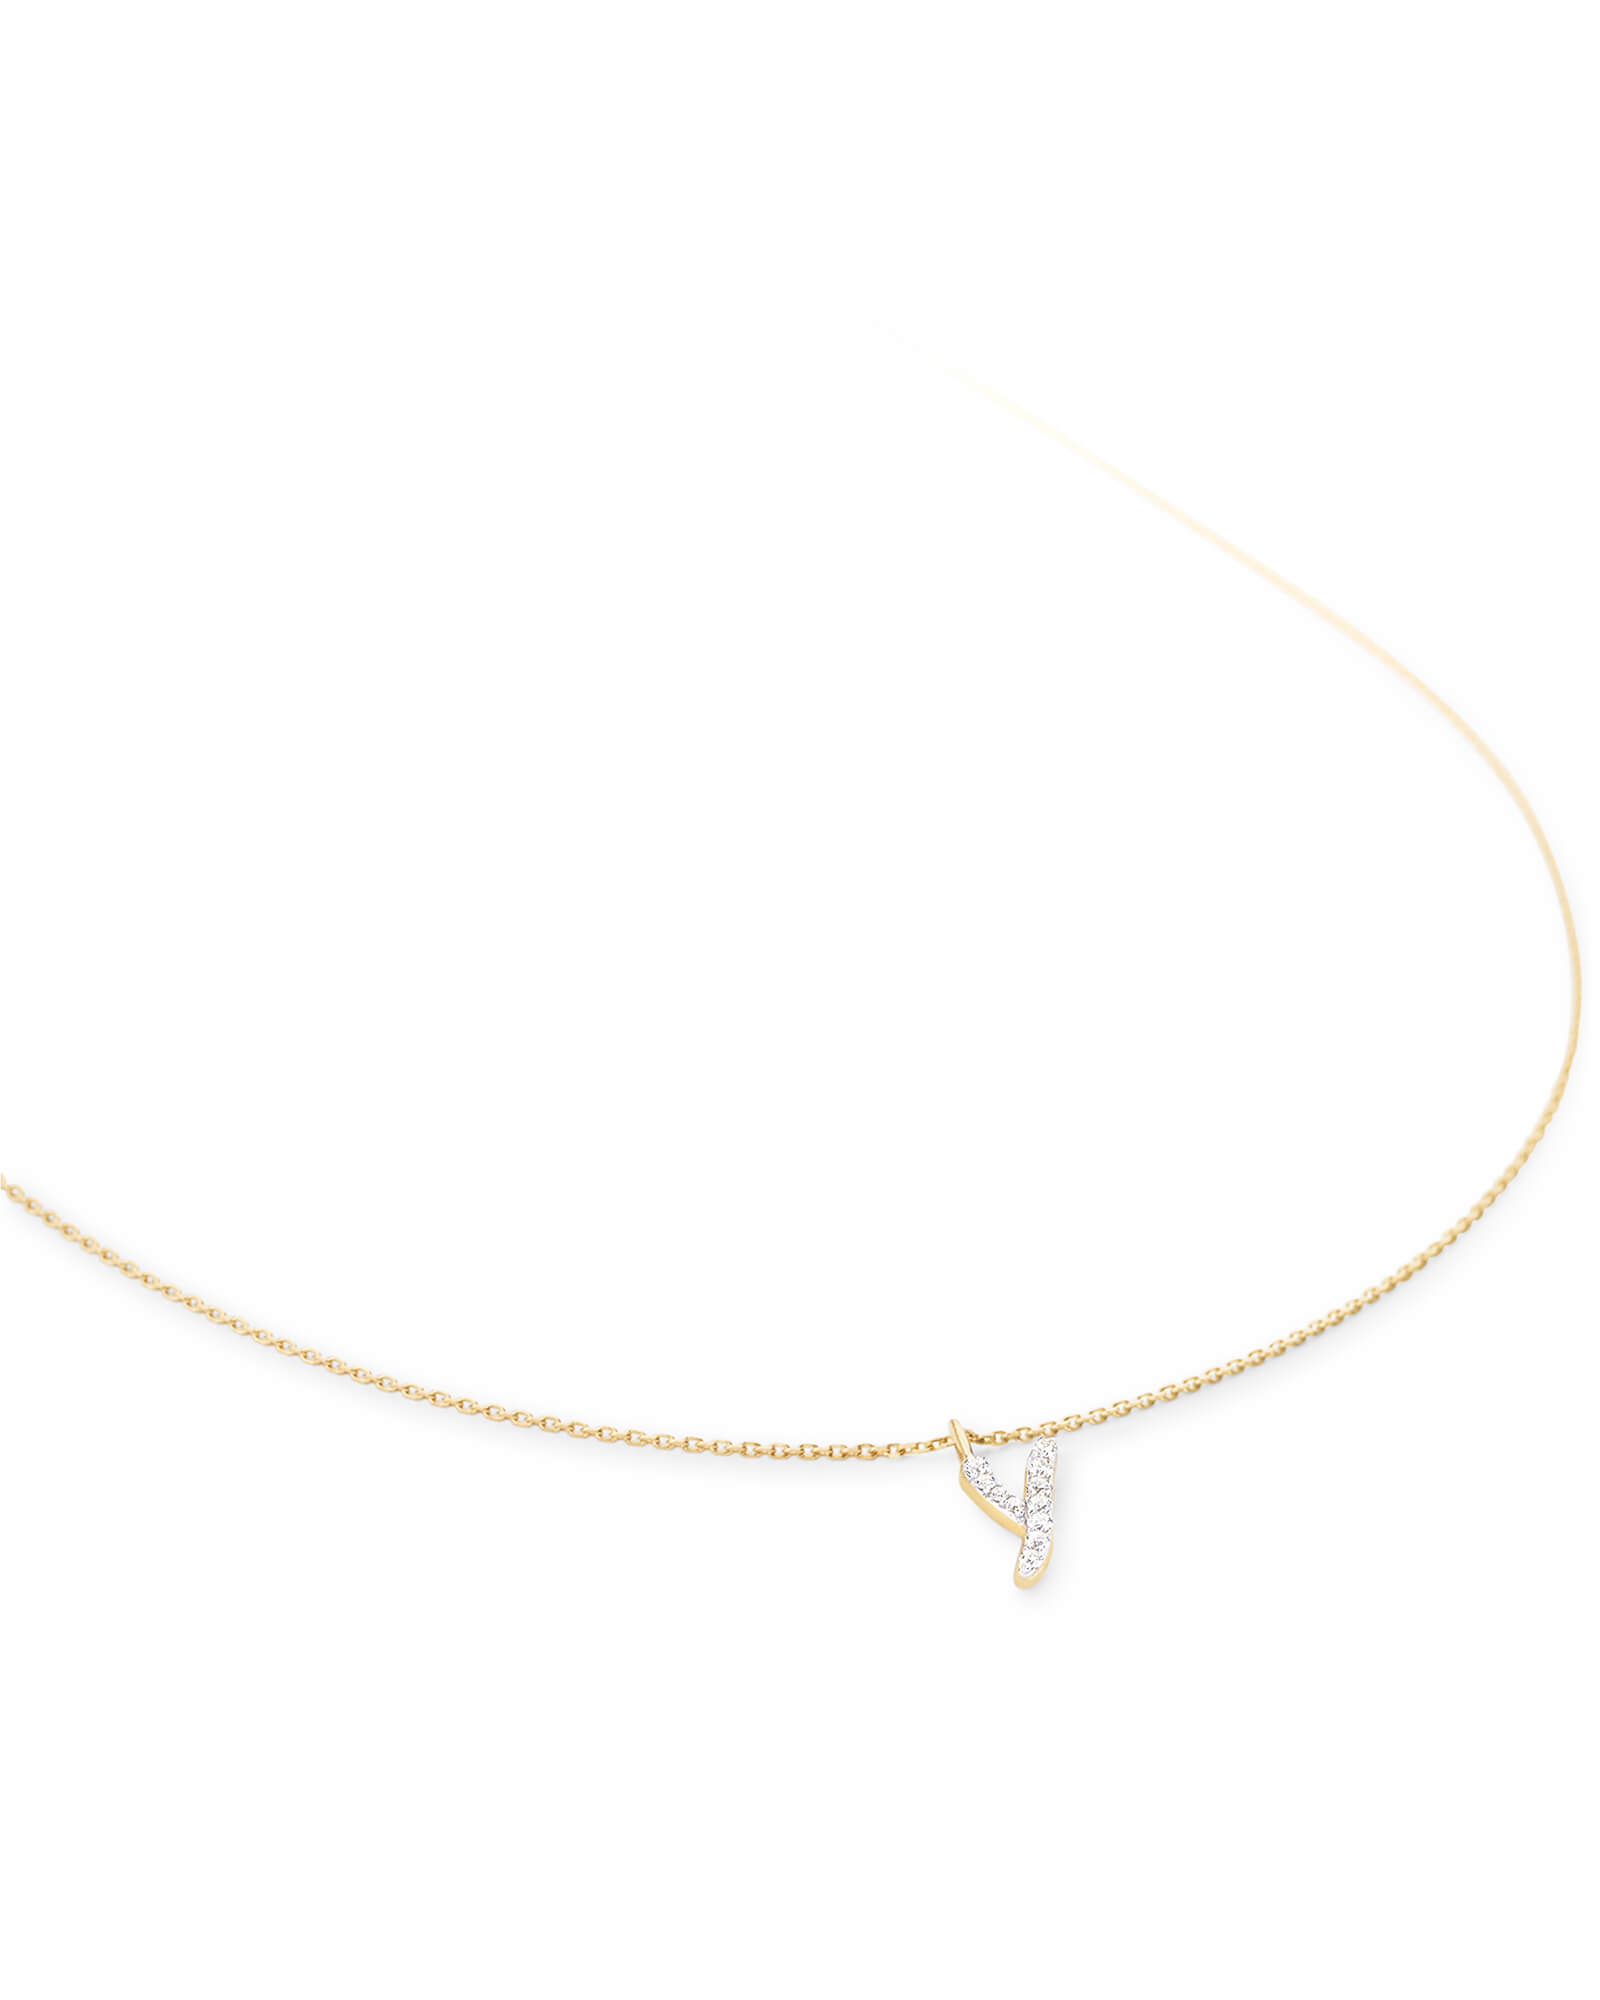 Chain Gift Once Upon A Time Letter Statement Necklace Multilayer Pendant